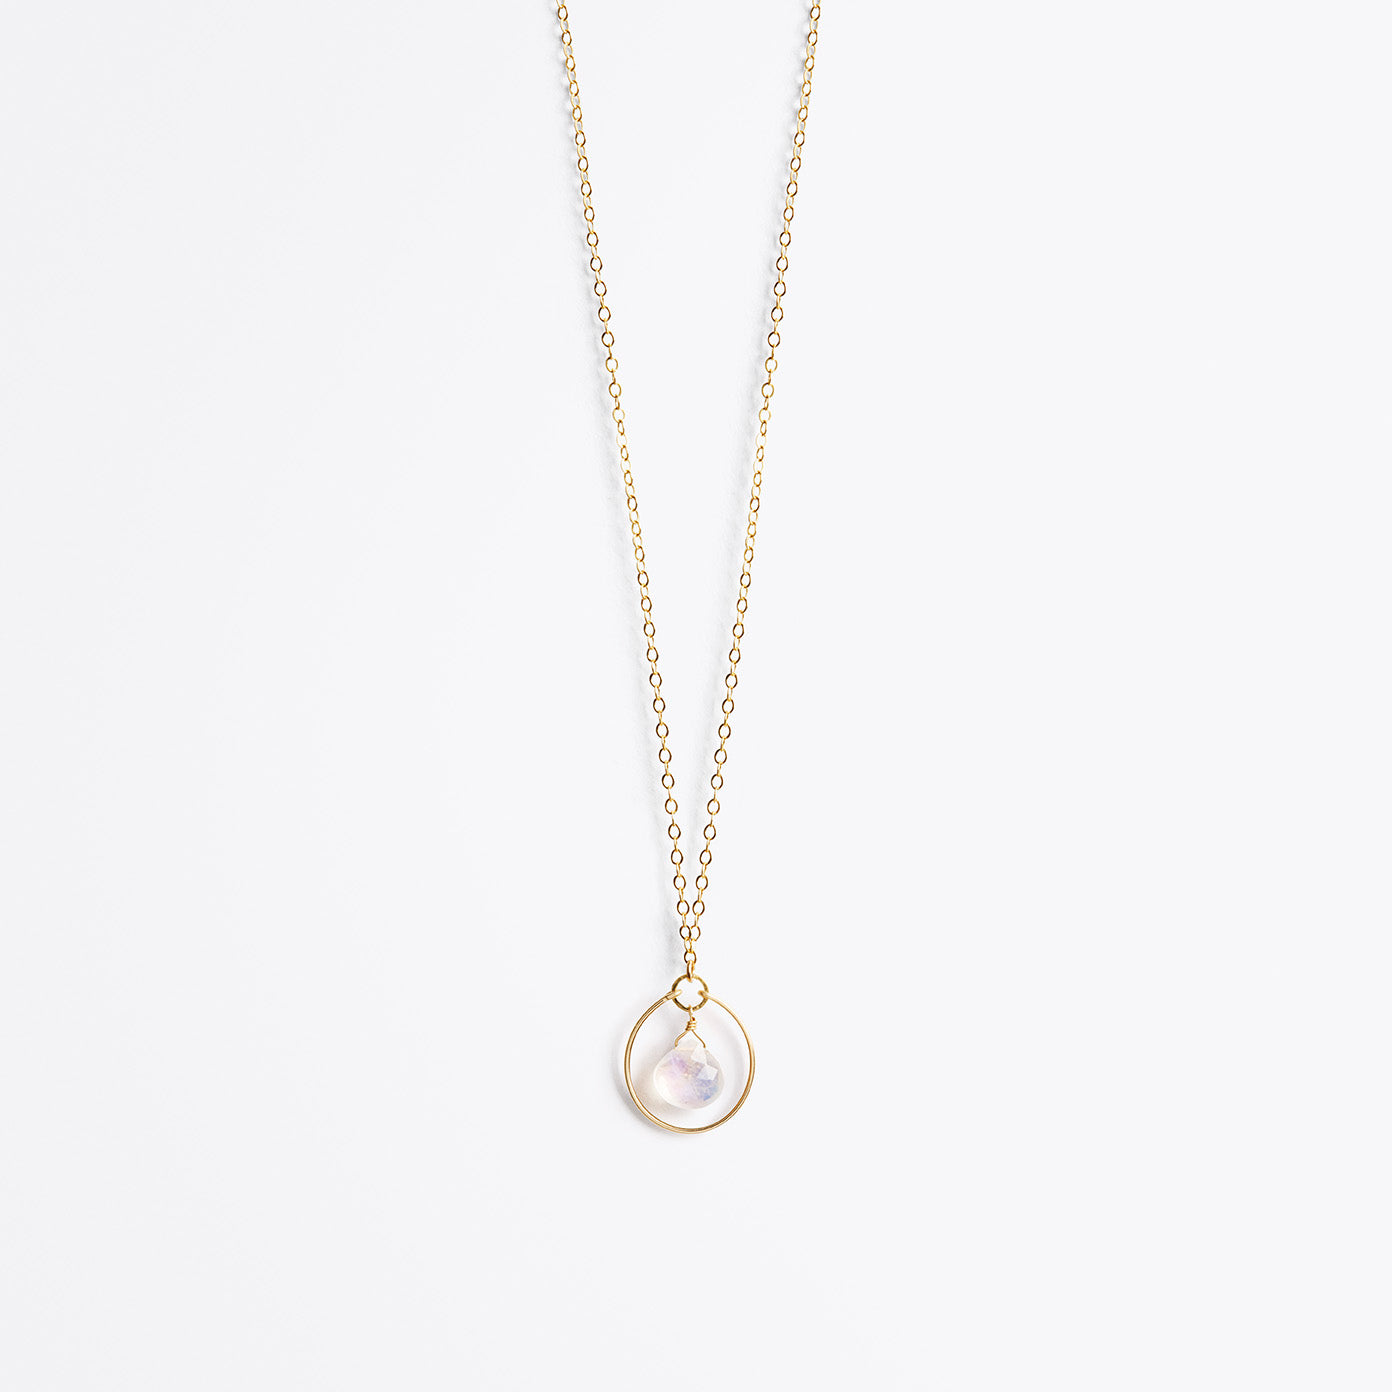 Wanderlust Life Ethically Handmade jewellery made in the UK. Minimalist gold and fine cord jewellery. petite stella orb gold chain necklace, rainbow moonstone